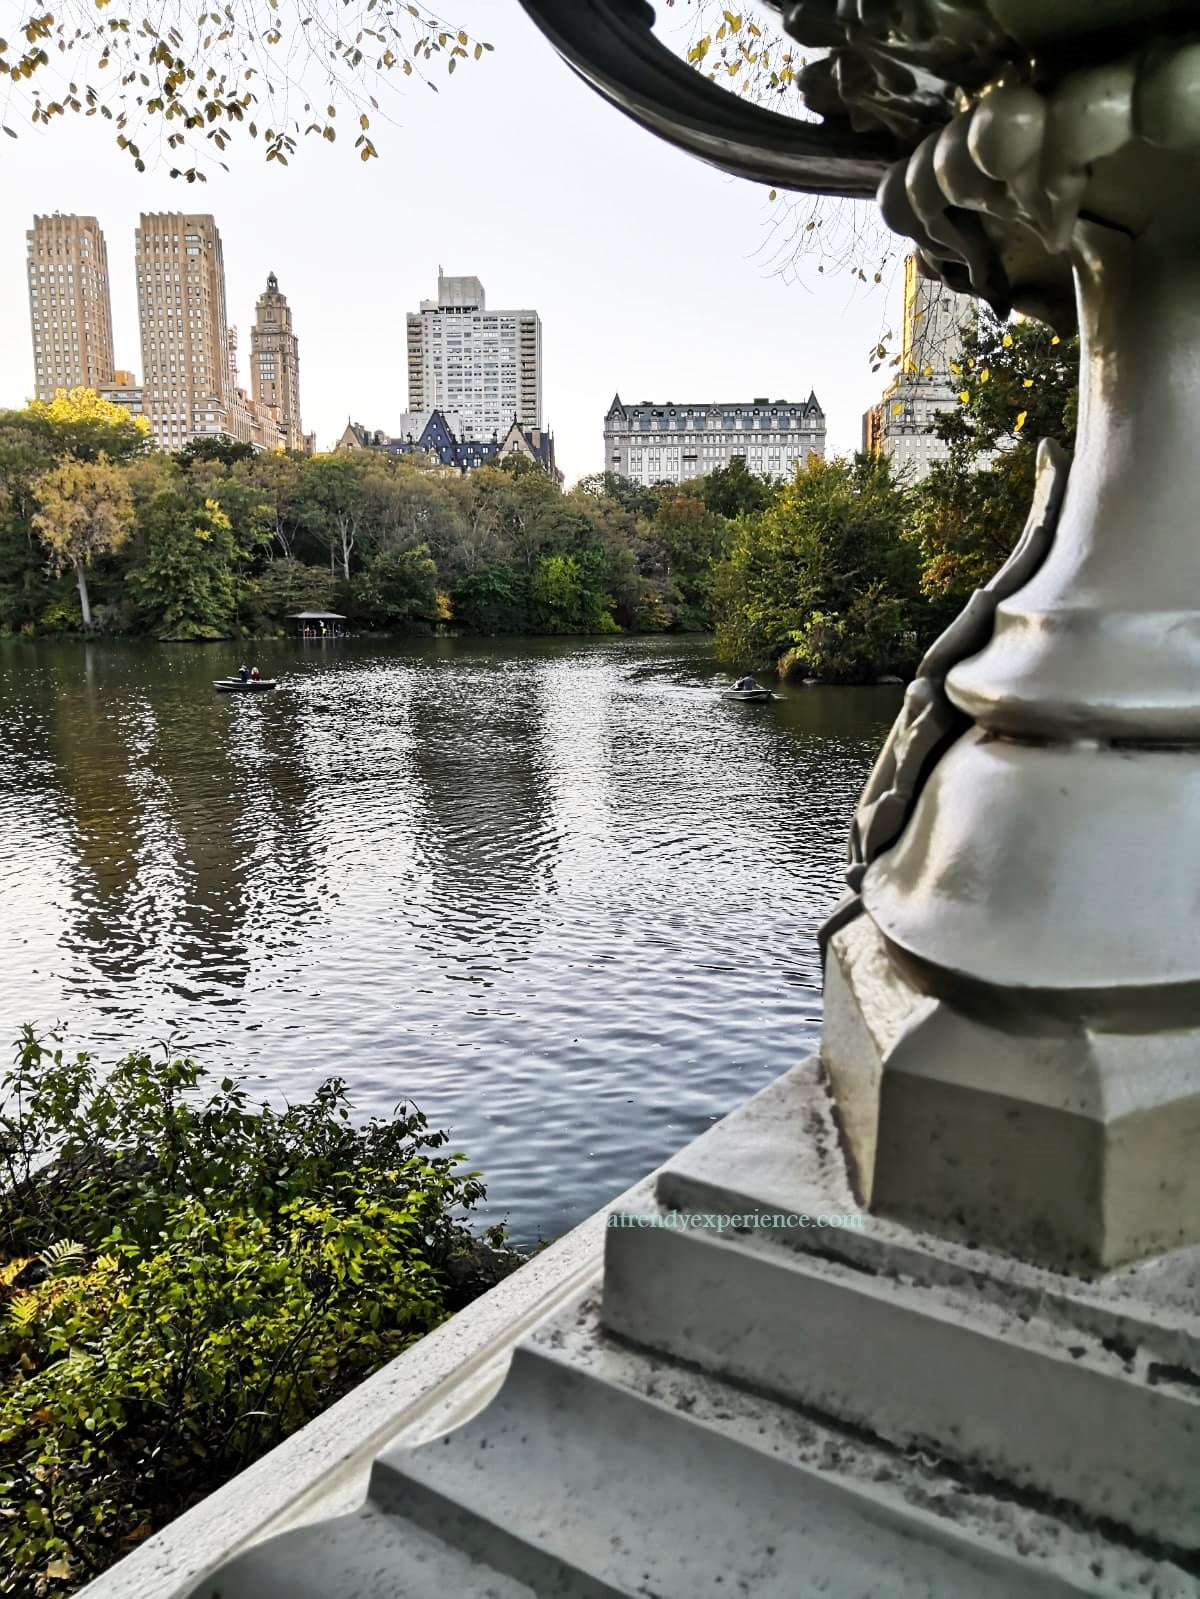 lago di Central Park, New York